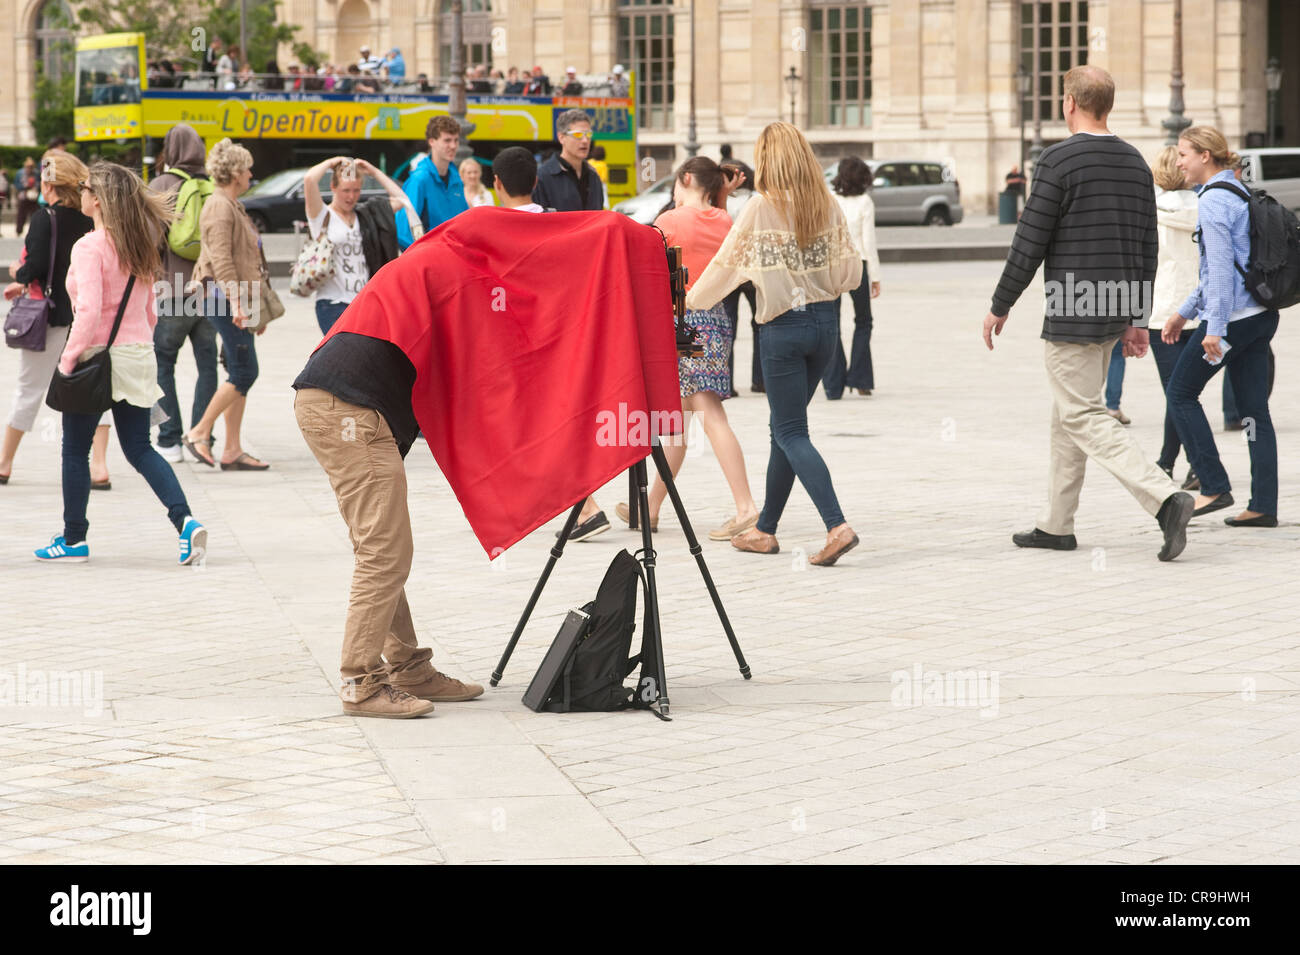 Paris, France - A photographer using a large format camera outdoors - Stock Image